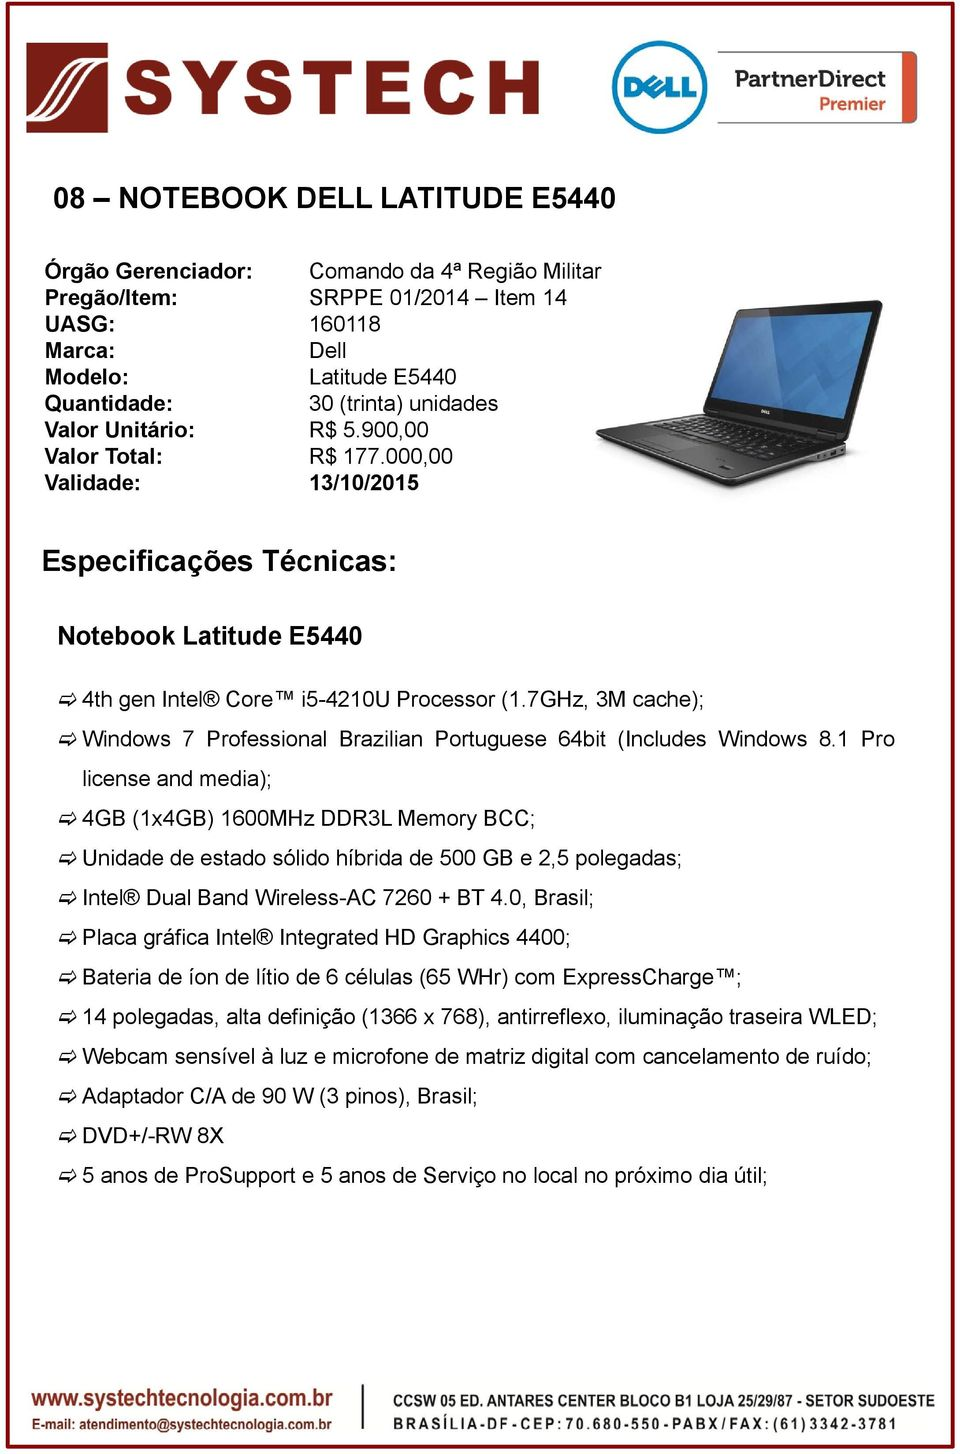 7GHz, 3M cache); Windows 7 Professional Brazilian Portuguese 64bit (Includes Windows 8.